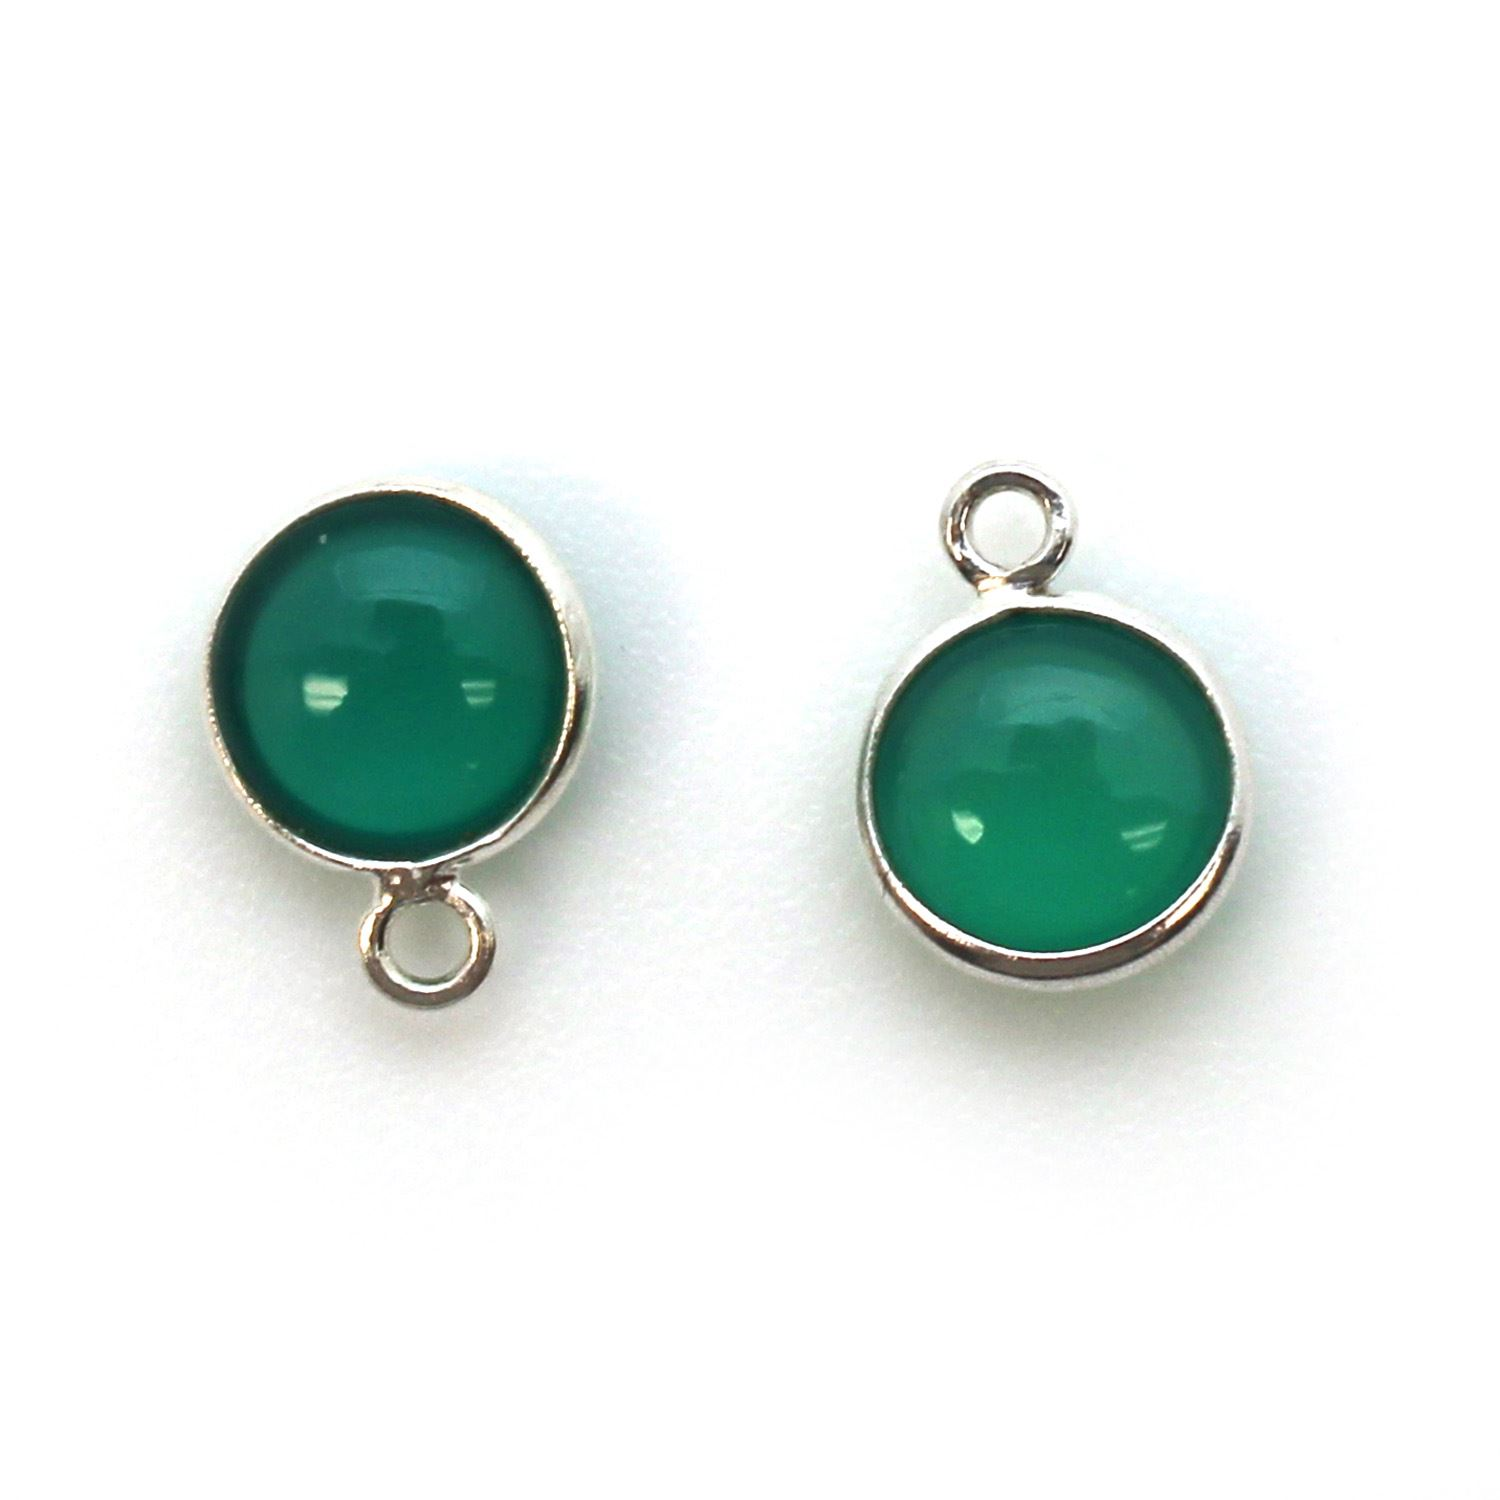 Bezel Charm Pendant - Sterling Silver Charm - Natural Green Onyx - Tiny Round Shape